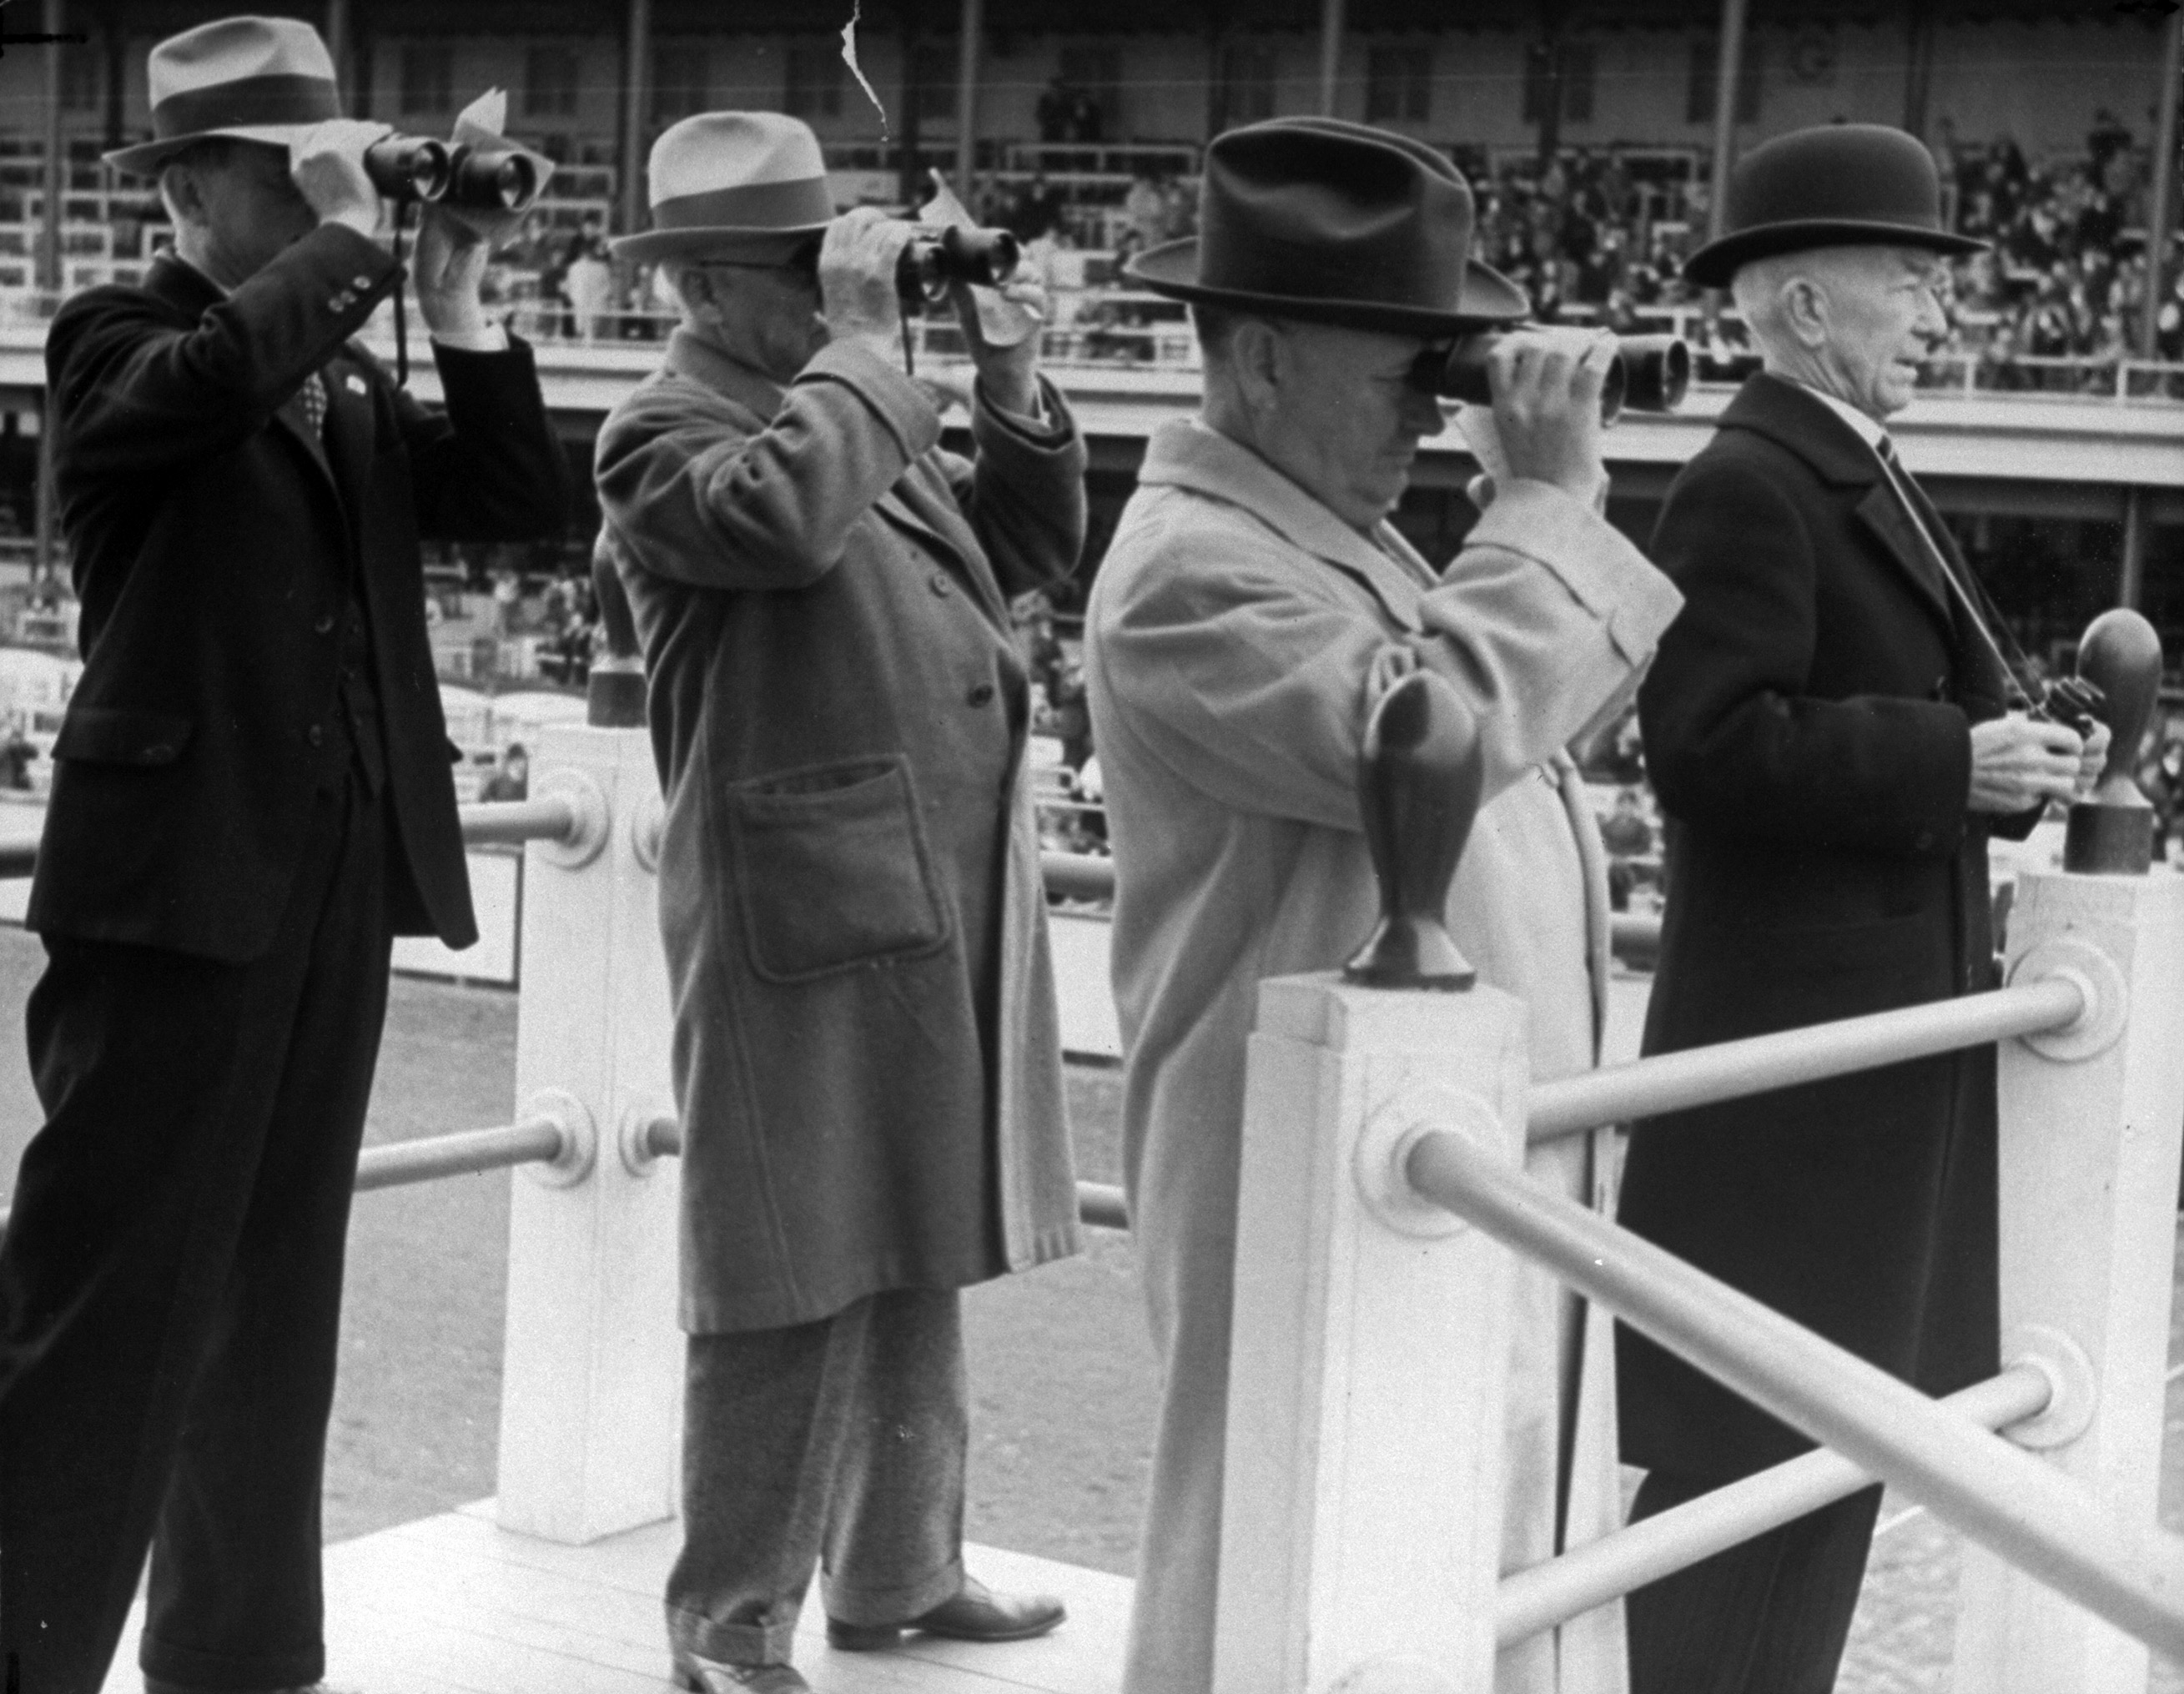 Caption from LIFE. Pre-eminent among Churchill Downs officialdom at the 63rd Kentucky Derby held Saturday were the four stewards of the race. Left to right they are: Sam H. McMeekin, C. Bruce Head, S. C. Nuckols and Presiding Steward Charles F. Price.